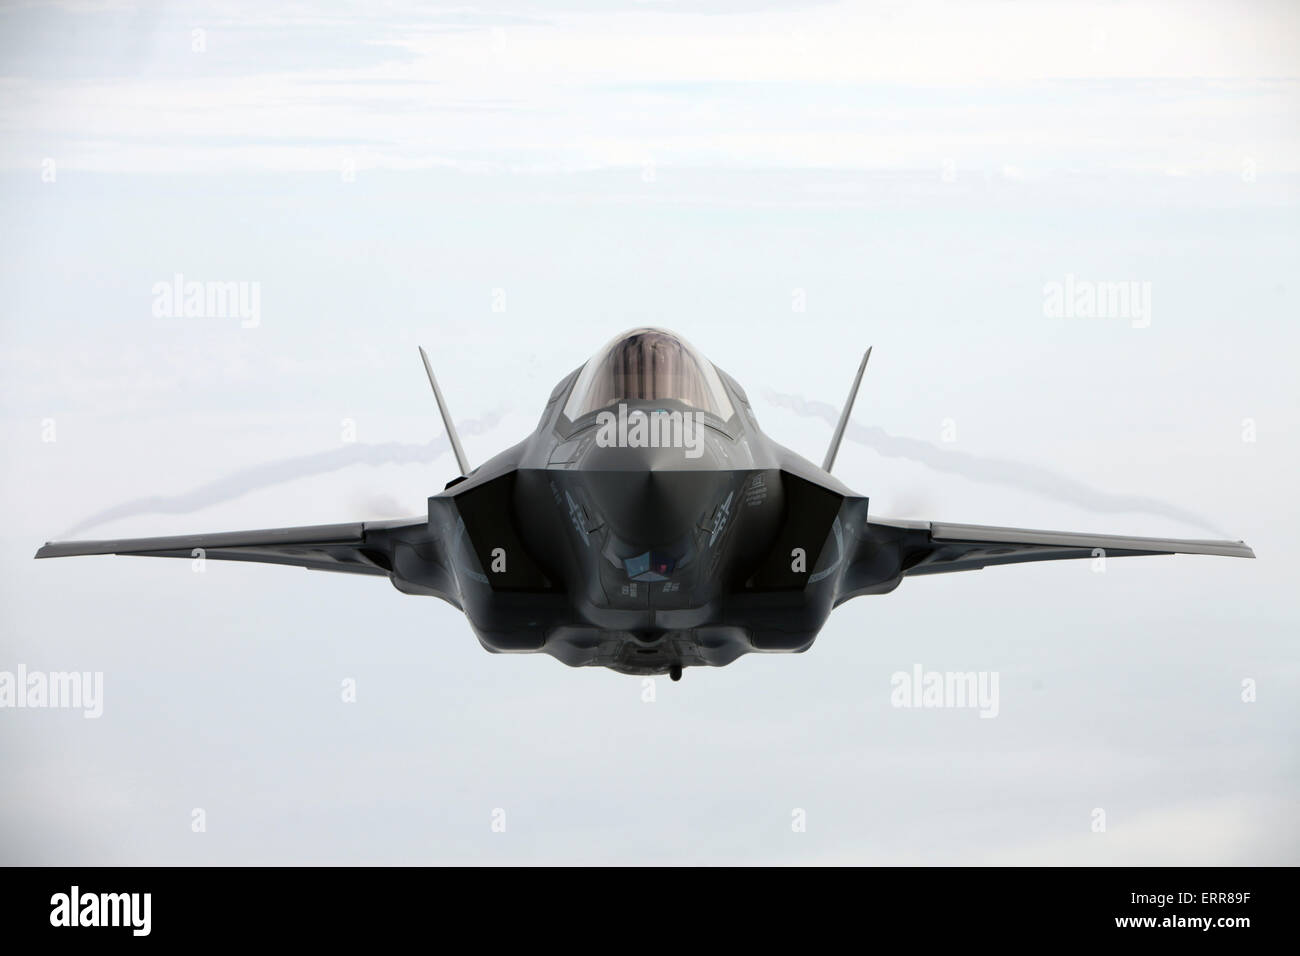 US Marine Corps F-35B Lightning II stealth fighter aircraft during refueling operations April 14, 2015 above Cherry - Stock Image